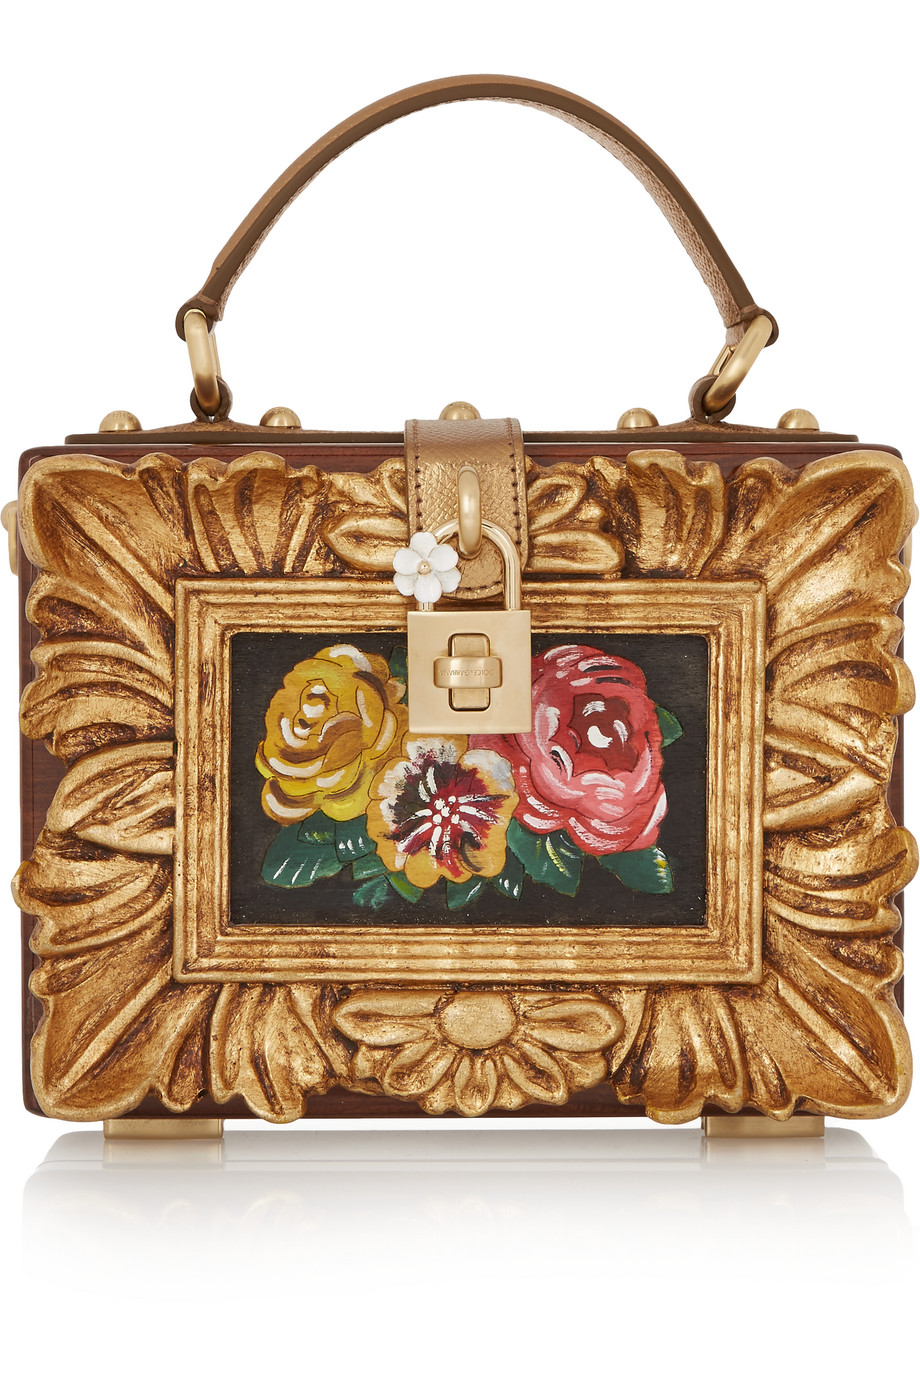 Dolce & Gabbana Dolce Metallic Textured Leather-Trimmed Wood Clutch, Bronze, Women's